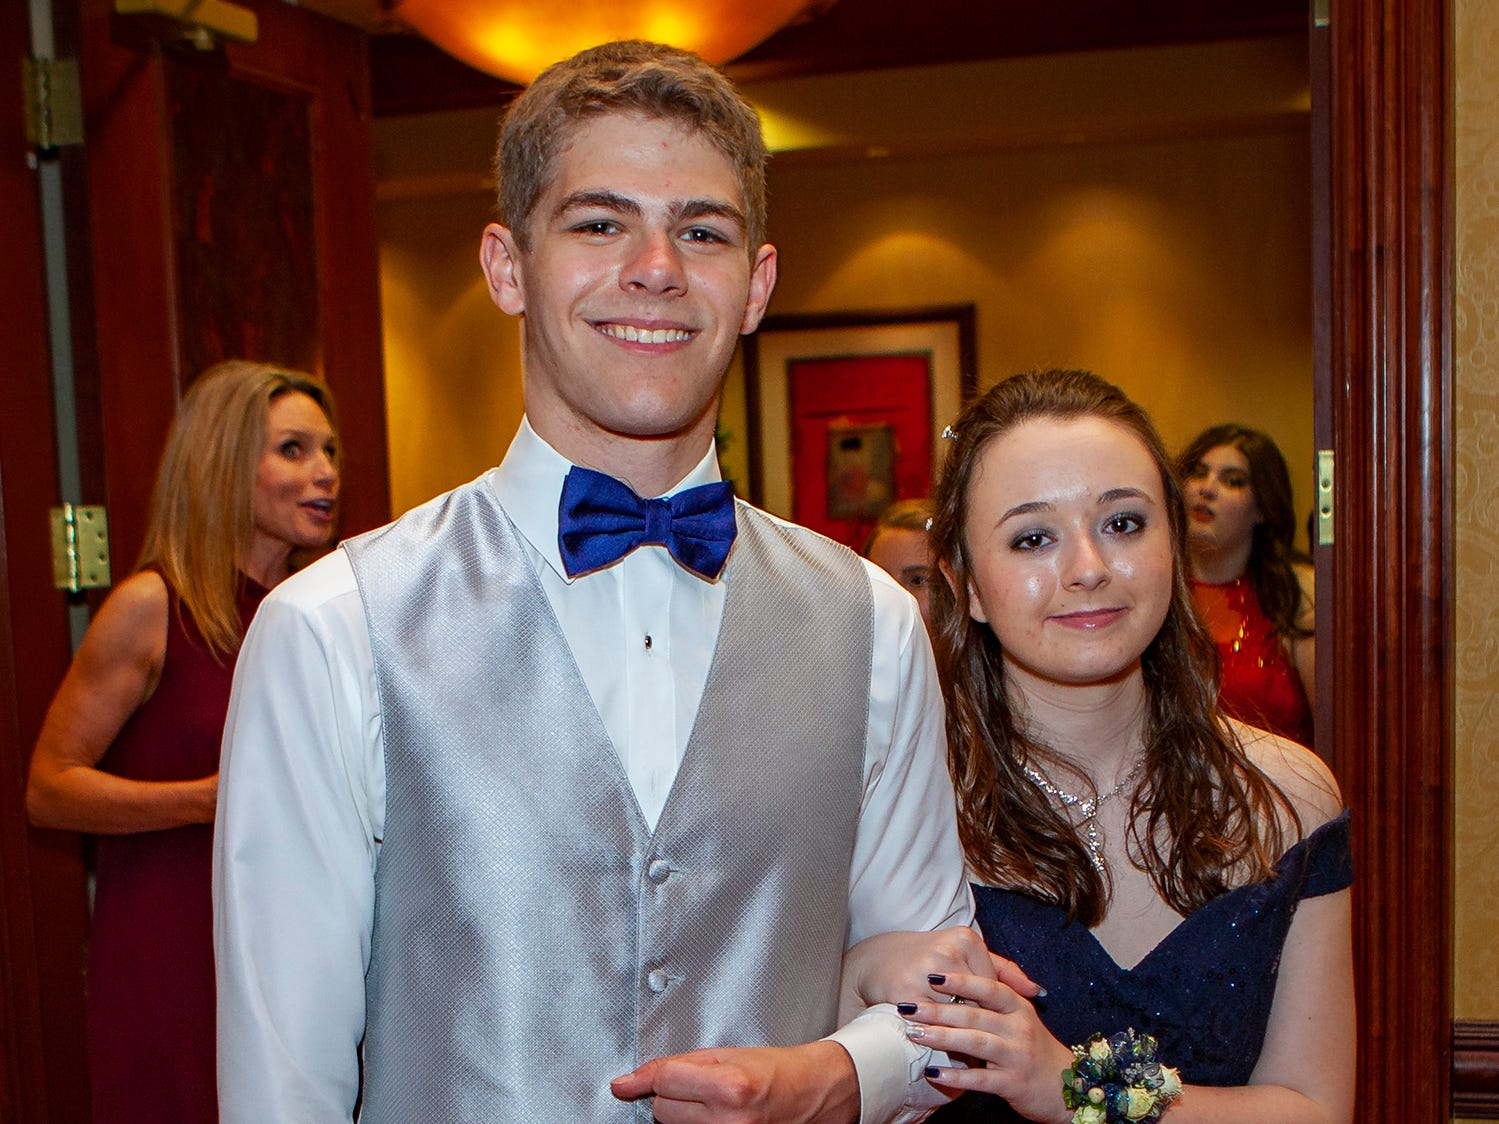 Daniel Wendt and Cami Warren enter the ballroom for the senior walk at Central Magnet School's prom, held Saturday, April 6 at Embassy Suites in Murfreesboro.